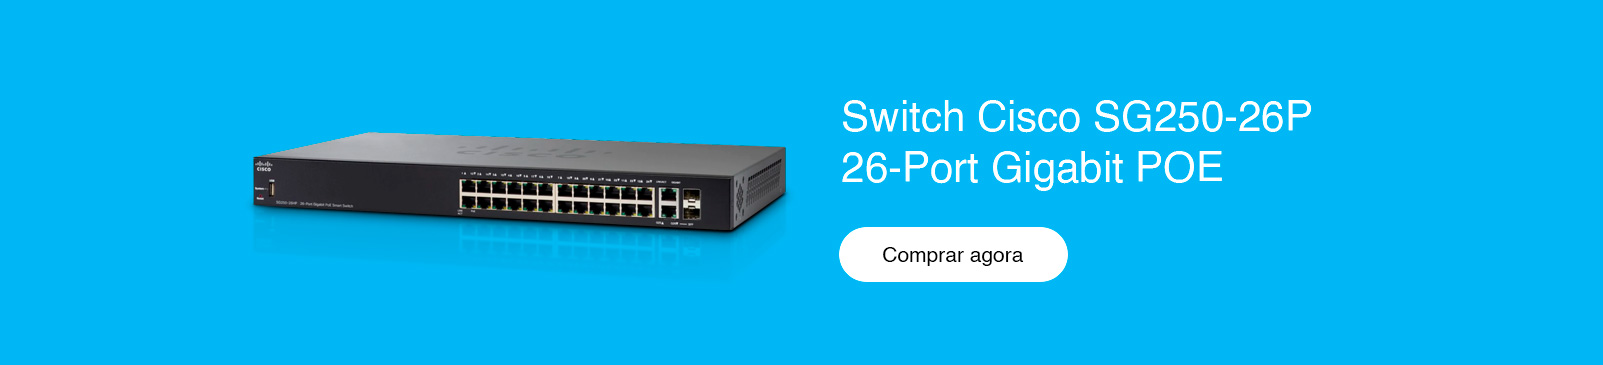 Switch Cisco SG250